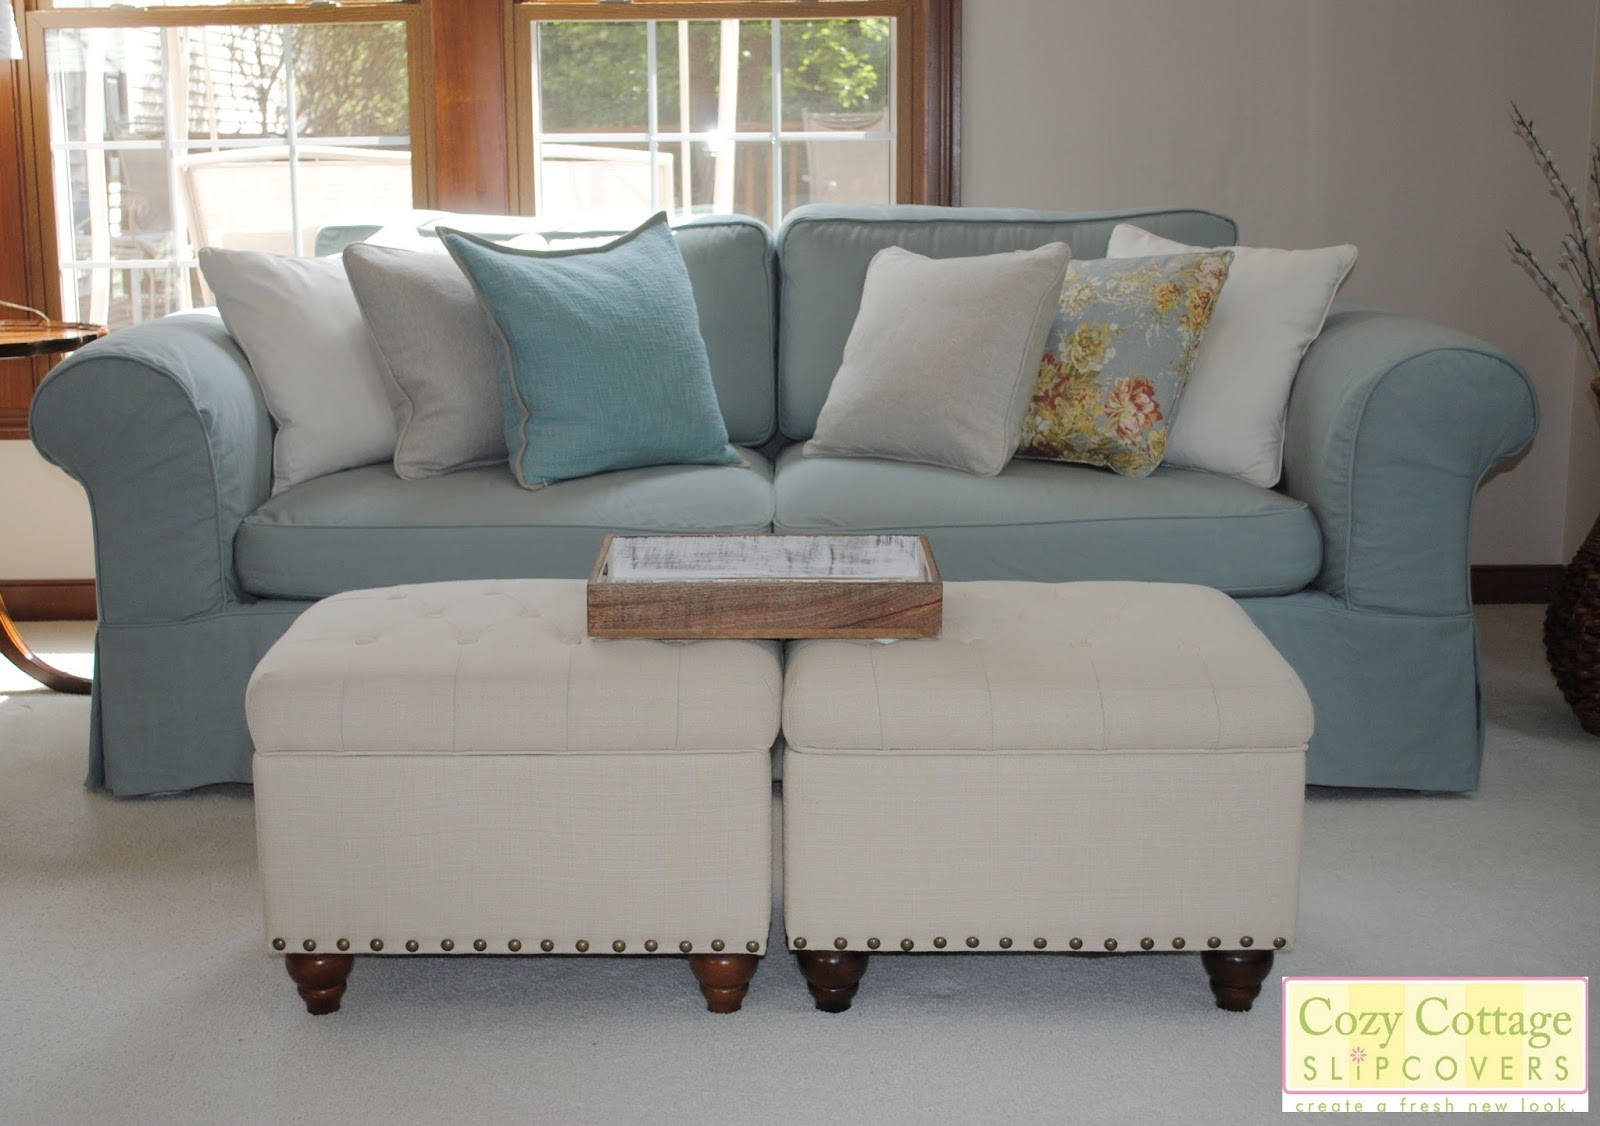 Cozy Cottage Slipcovers Fresh New Look With Slipcovers